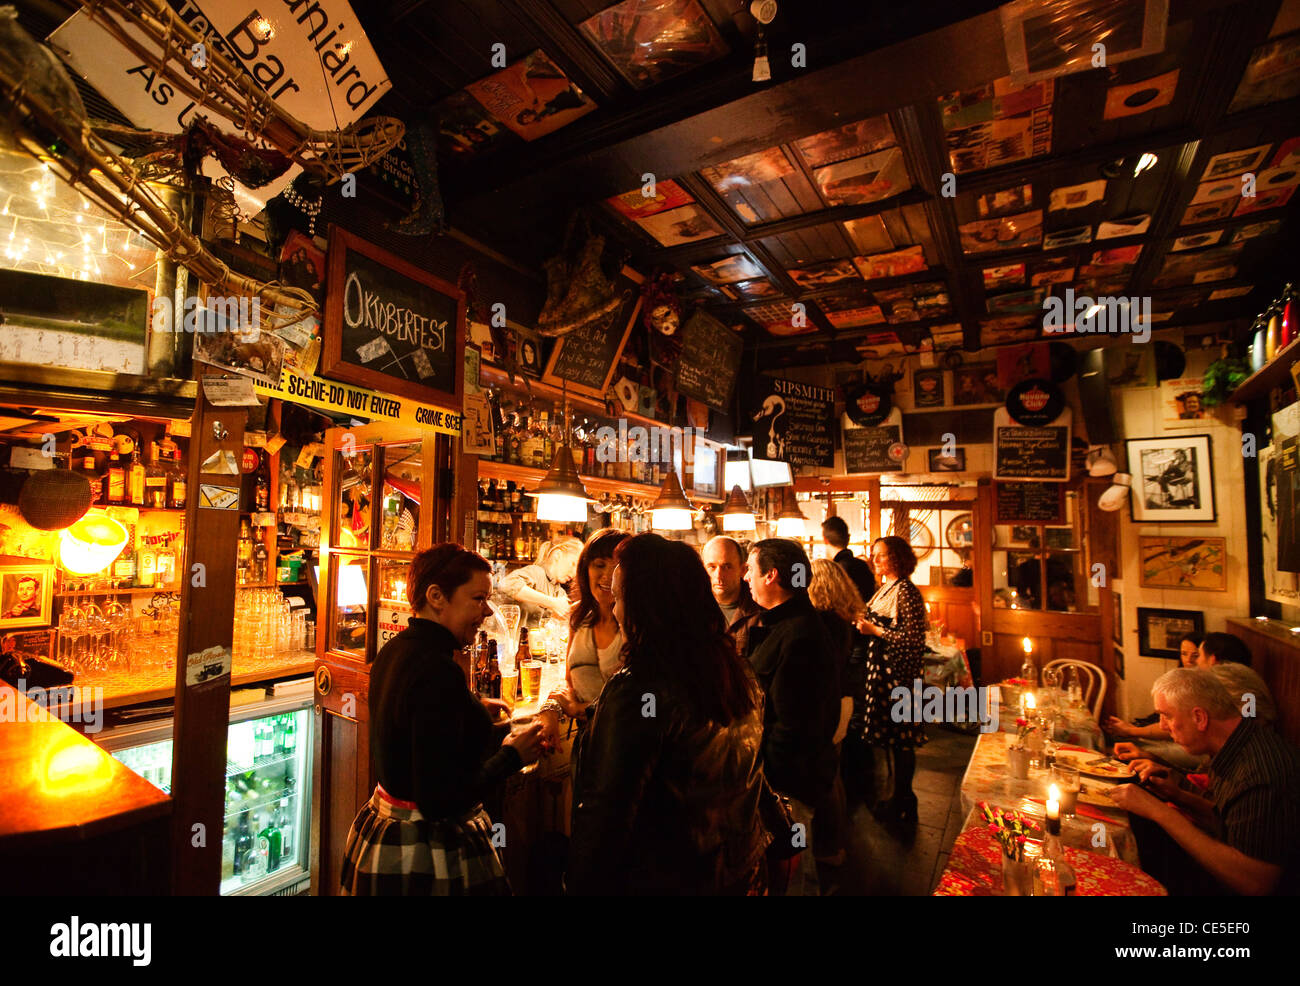 The Spaniard Bar, Cathedral Quarter, Belfast, Northern Ireland - Stock Image